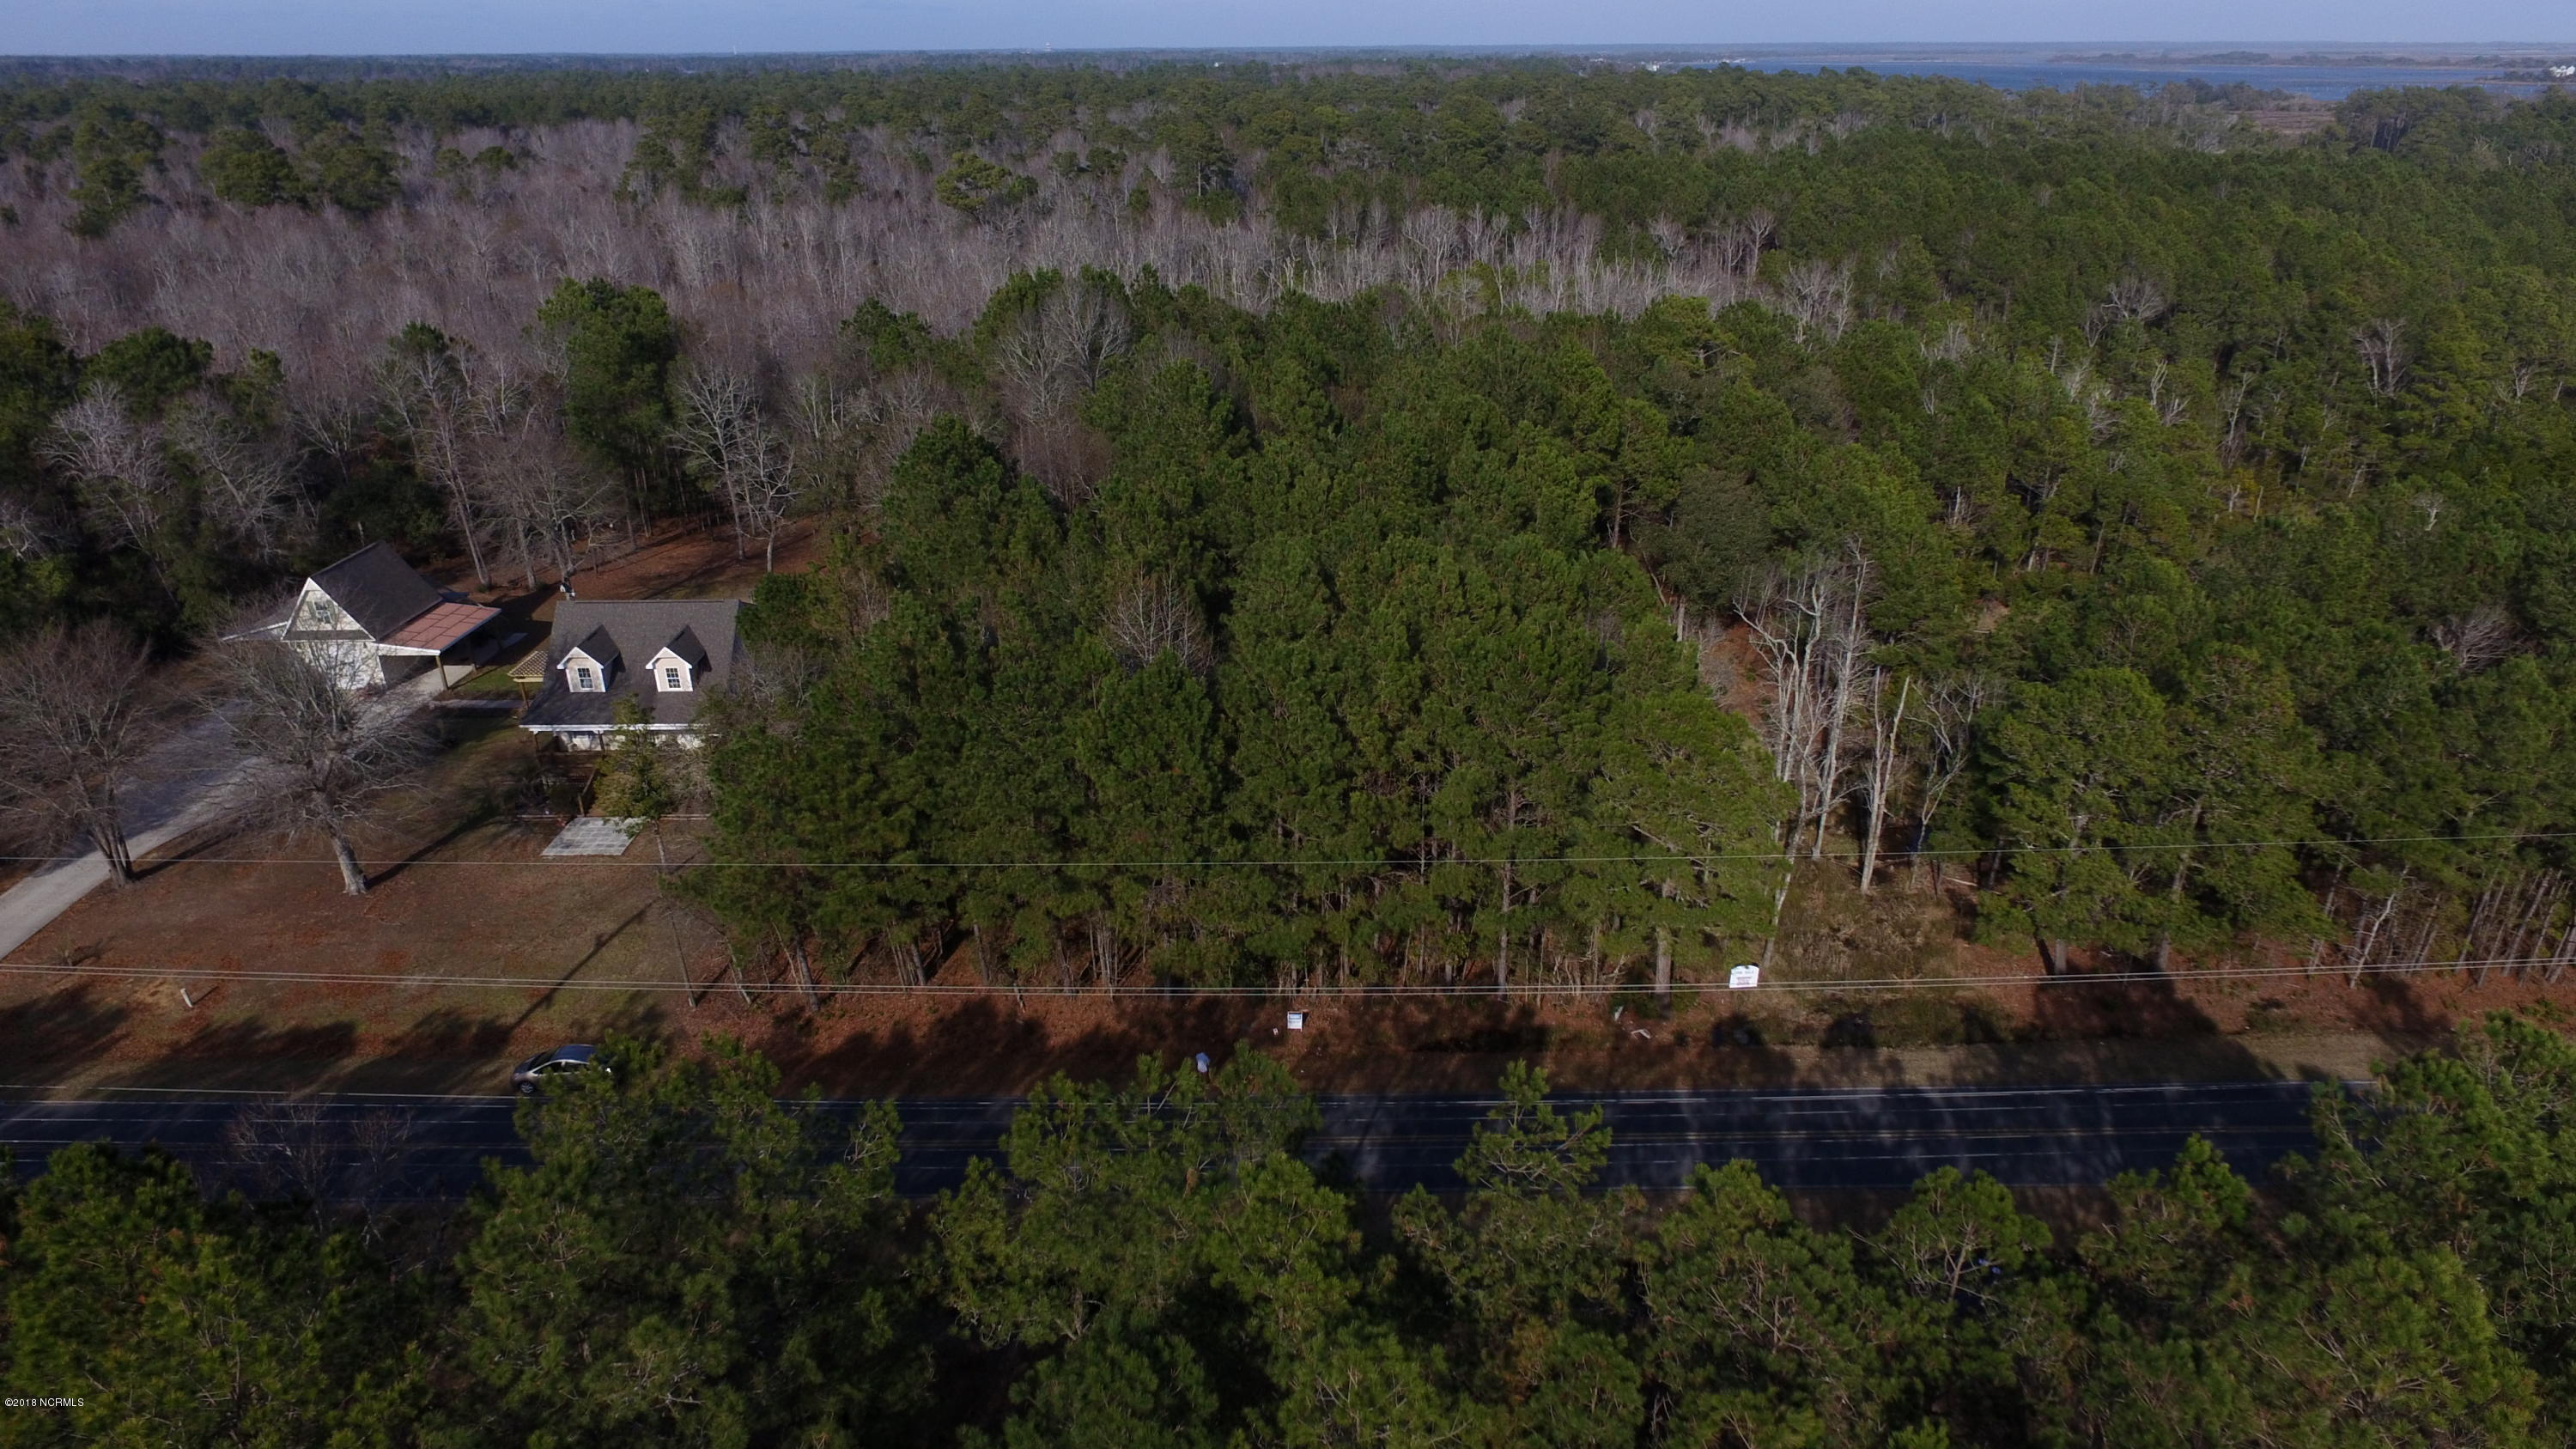 Vacant land just waiting for you to build your dream home on it! Located close to Jacksonville and the back gate of Camp Lejeune. Enjoy the local beaches with the convenient location close to North Topsail Beach, as well.